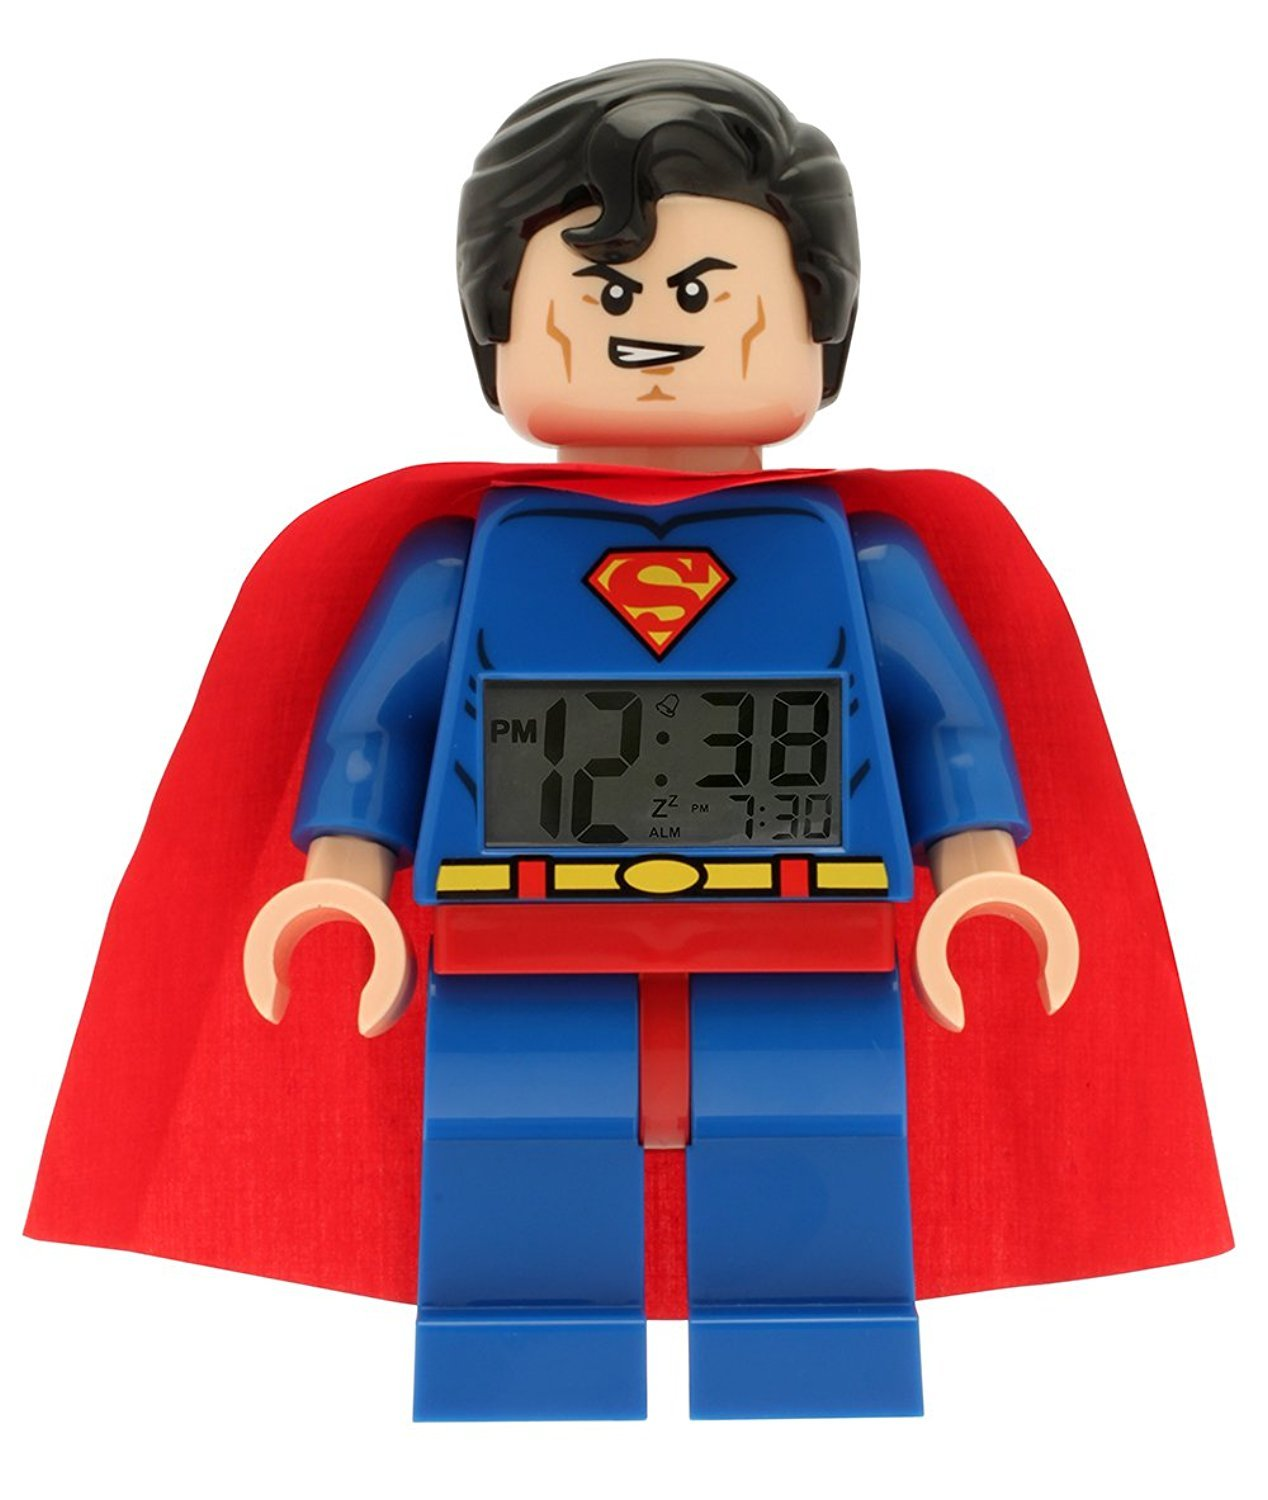 LEGO 9005701 Superman Kids Minifigure Light Up Alarm Clock | Blue/red | Plastic | 9.5 inches Tall | LCD Display